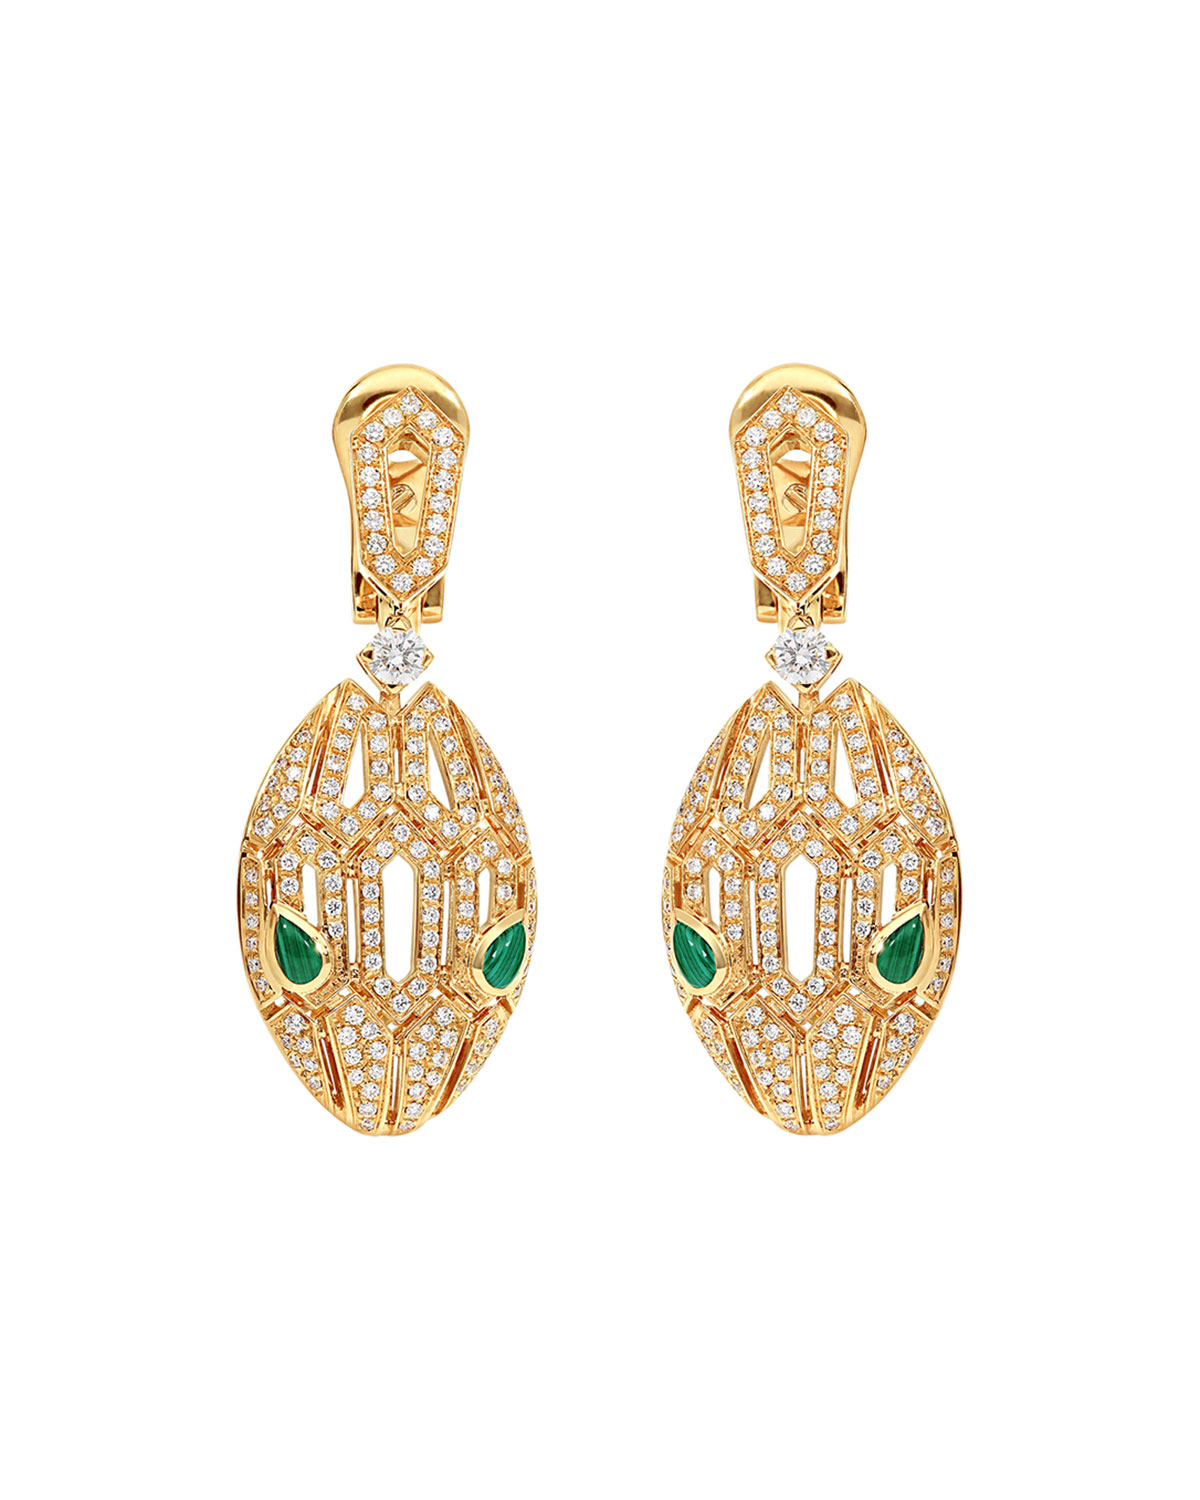 Serpenti Drop Earrings in 18k Rose Gold with Diamonds and Malachite